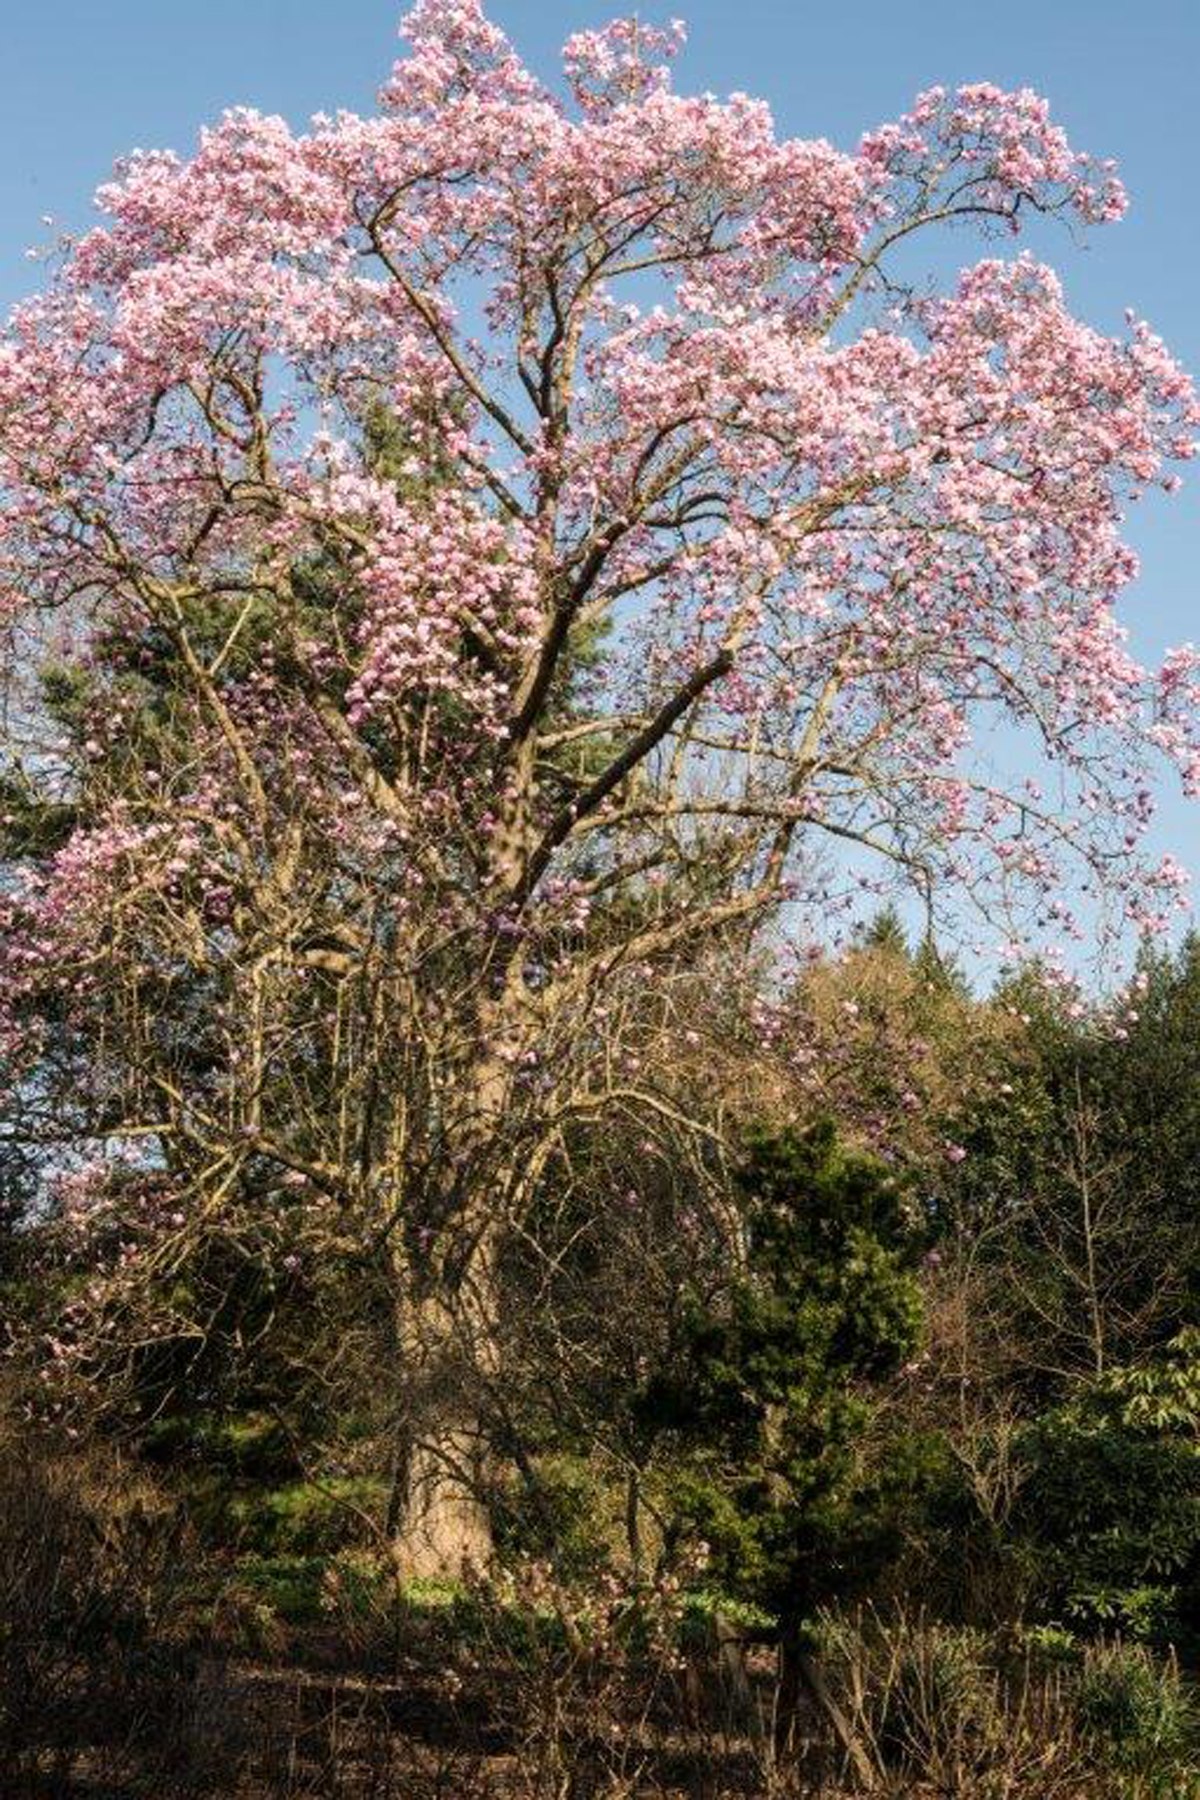 A blooming Magnolia tree in Borde Hill Garden